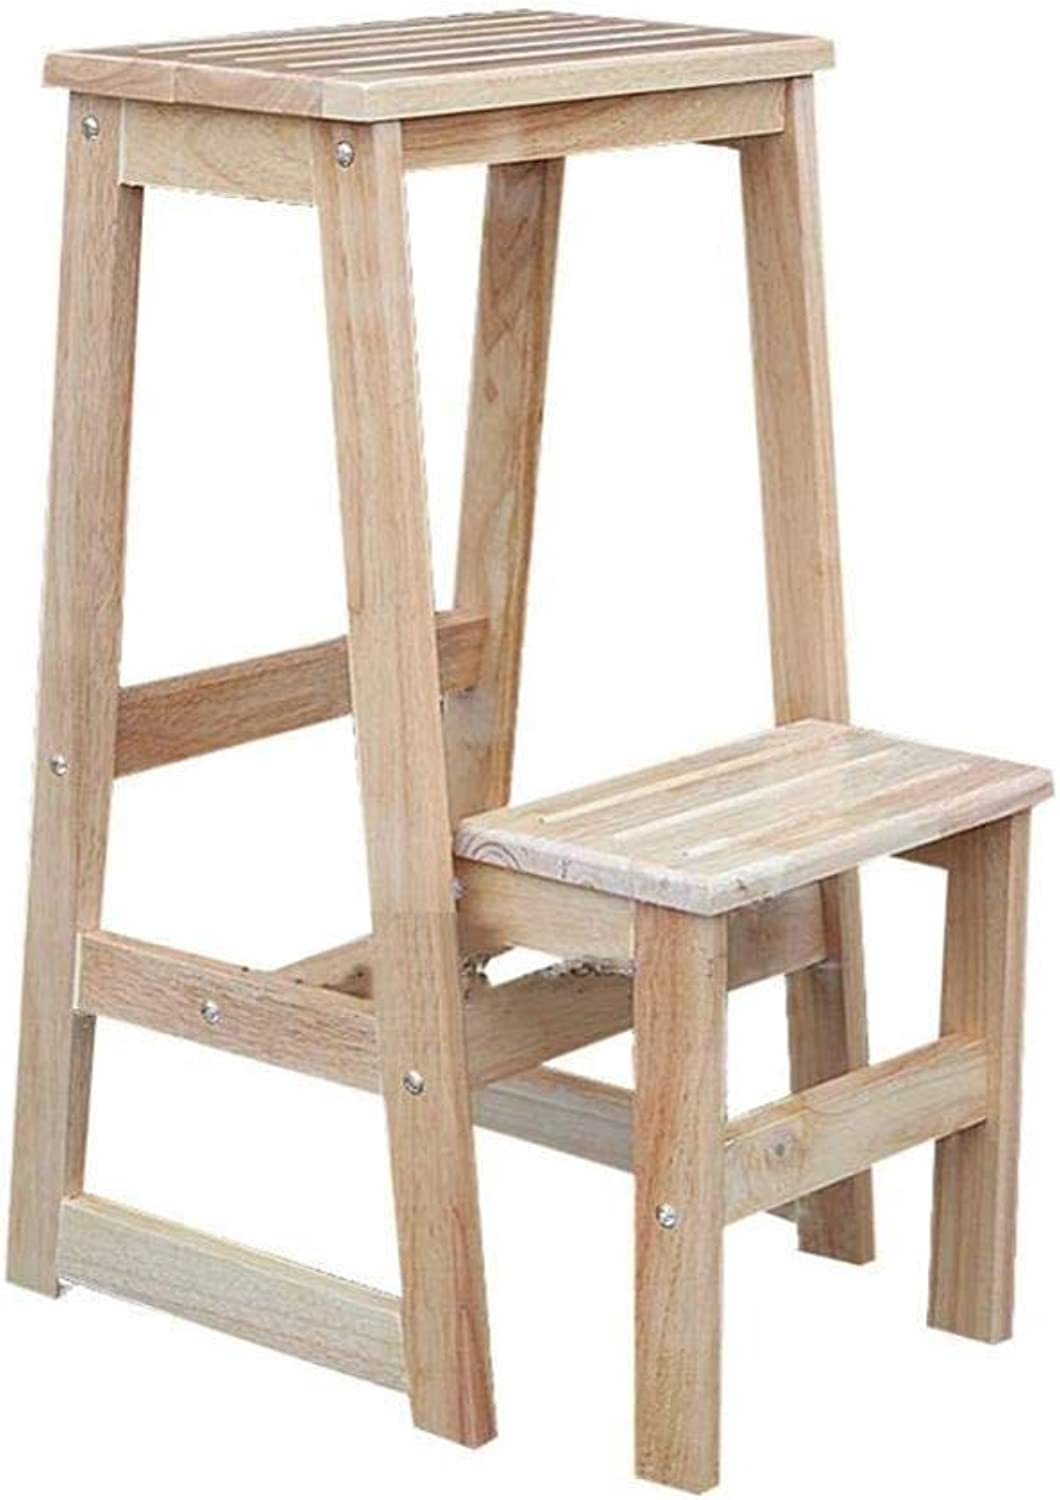 Step Stool Folding Ladder Stairs Stairs Double 2-Step Stool Barstool Cargo Ladder Save Space Step Stool (color   Holzfarbe)